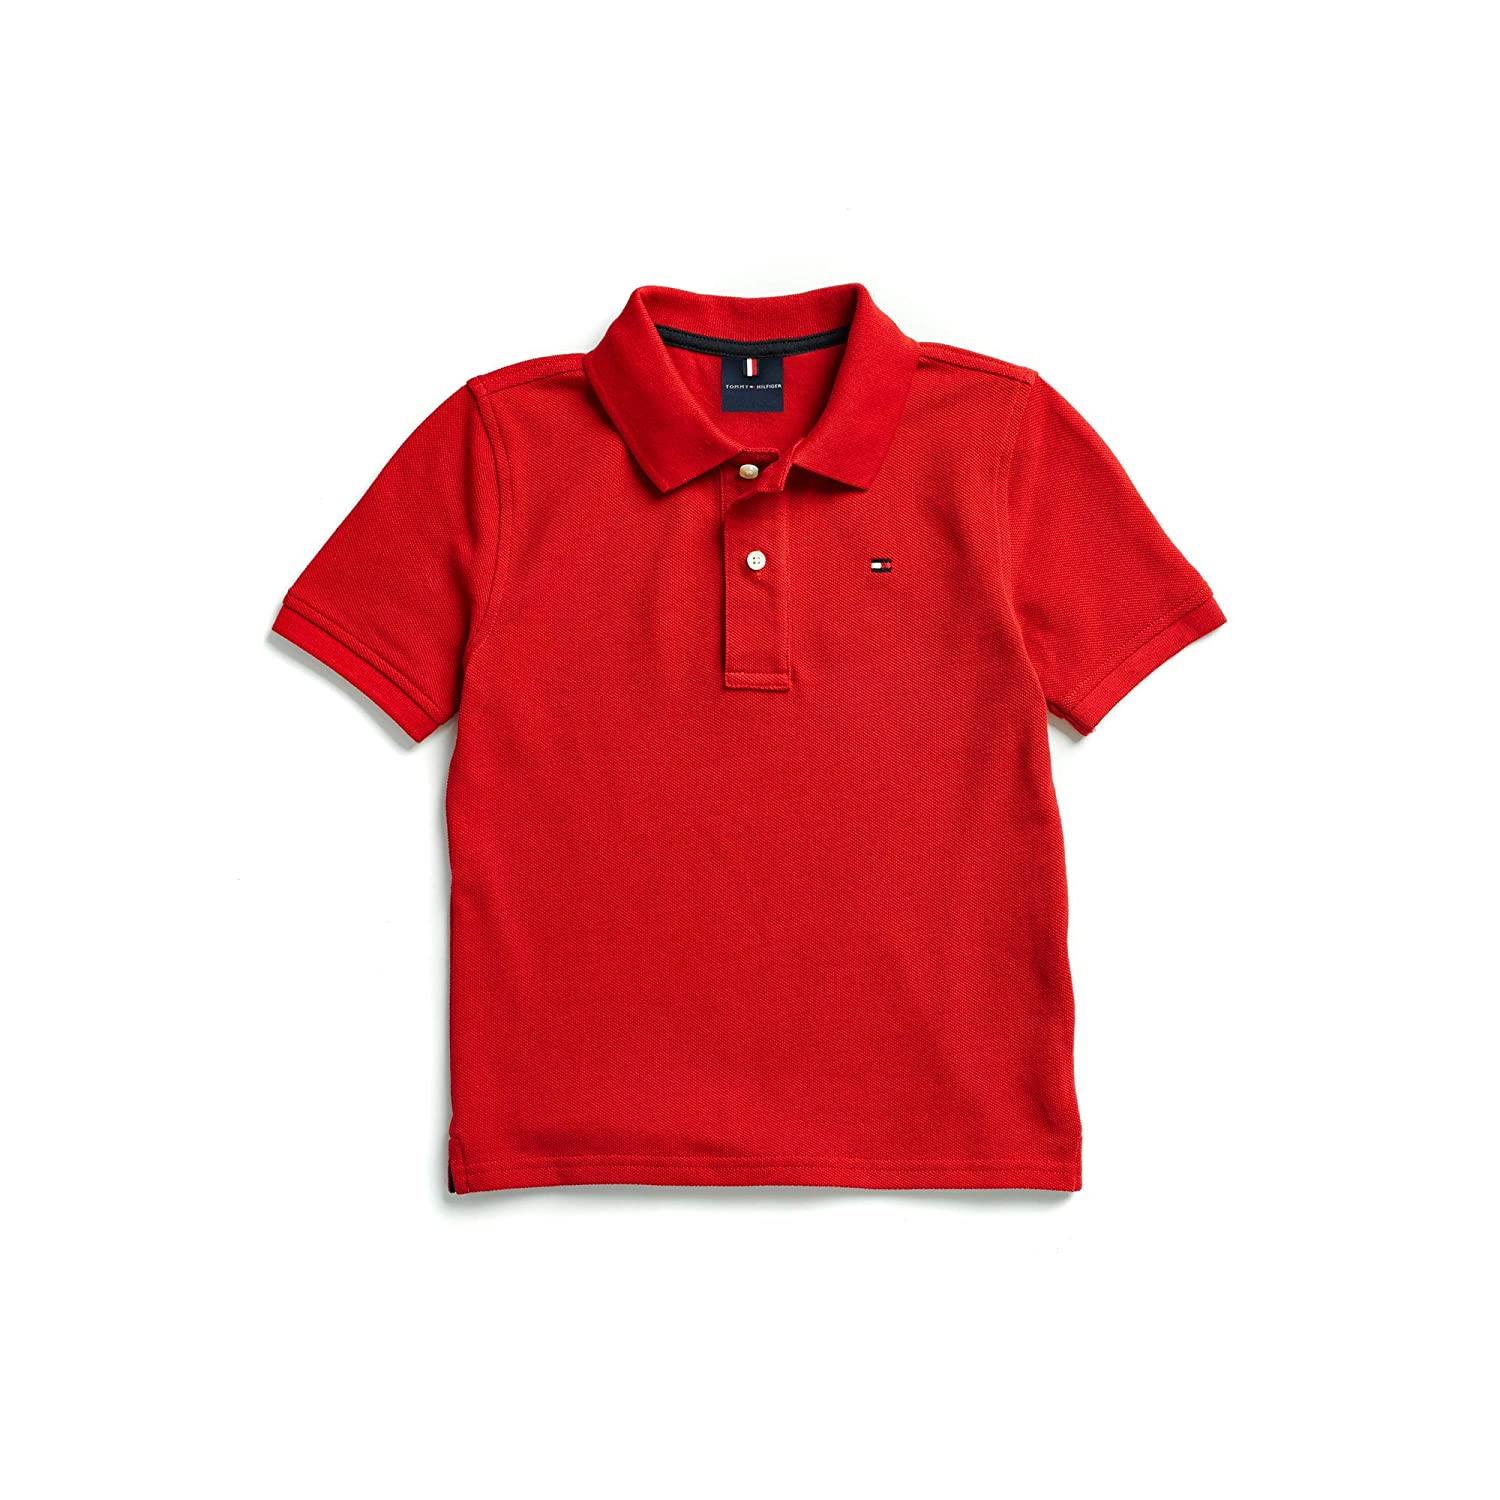 Tommy+Hilfiger Tommy Hilfiger Boys Adaptive Polo Shirt with Magnetic Buttons